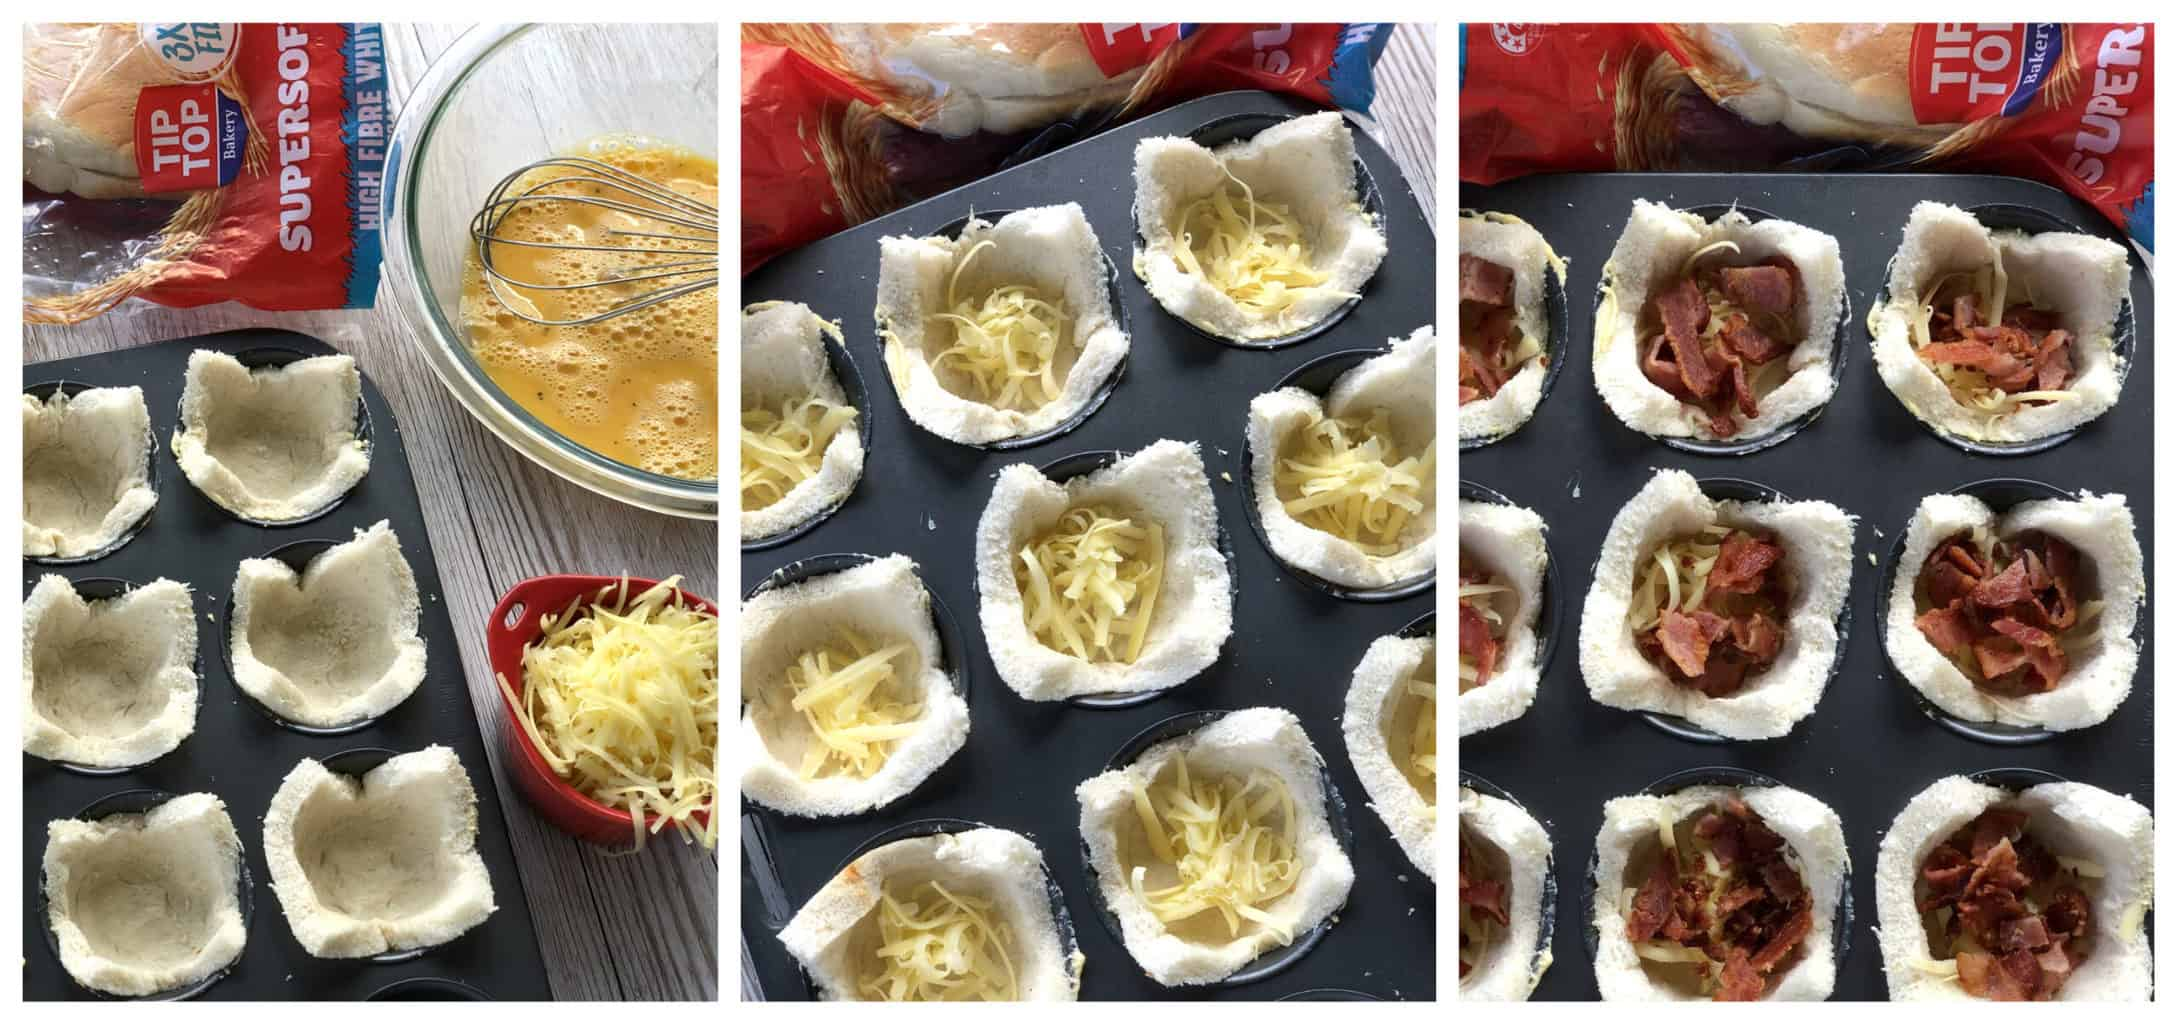 Step by step photos showing how to prepare the filling for the bread nests